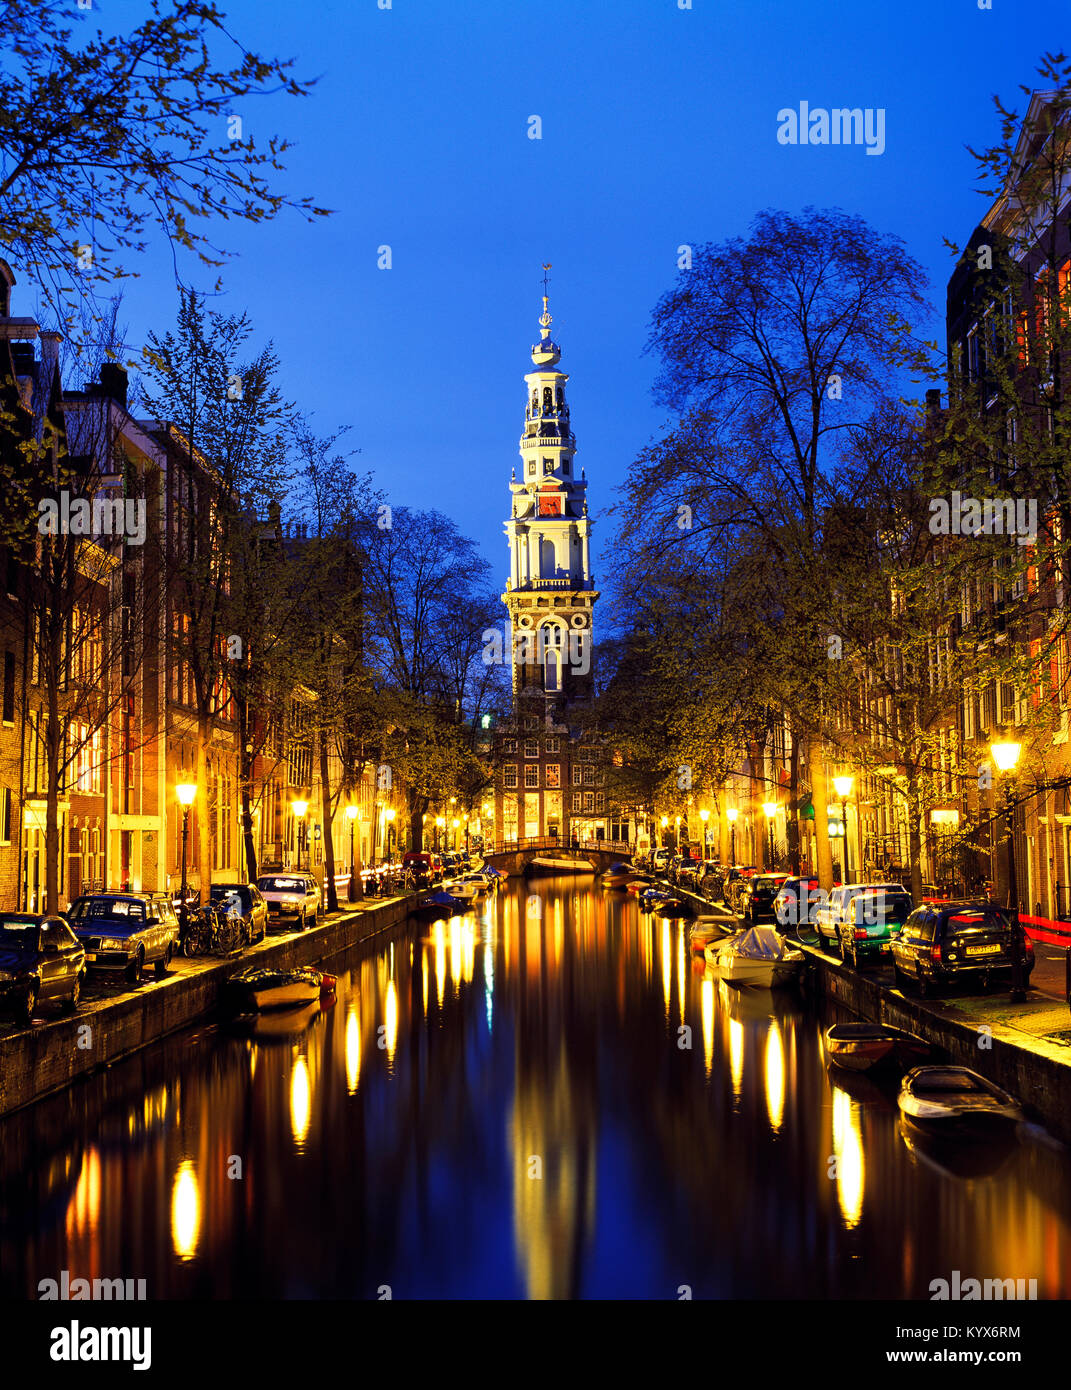 Groenburgwal and Zuiderkerk Canal, Amsterdam, Noord-Holland, Holland, the Netherlands - Stock Image